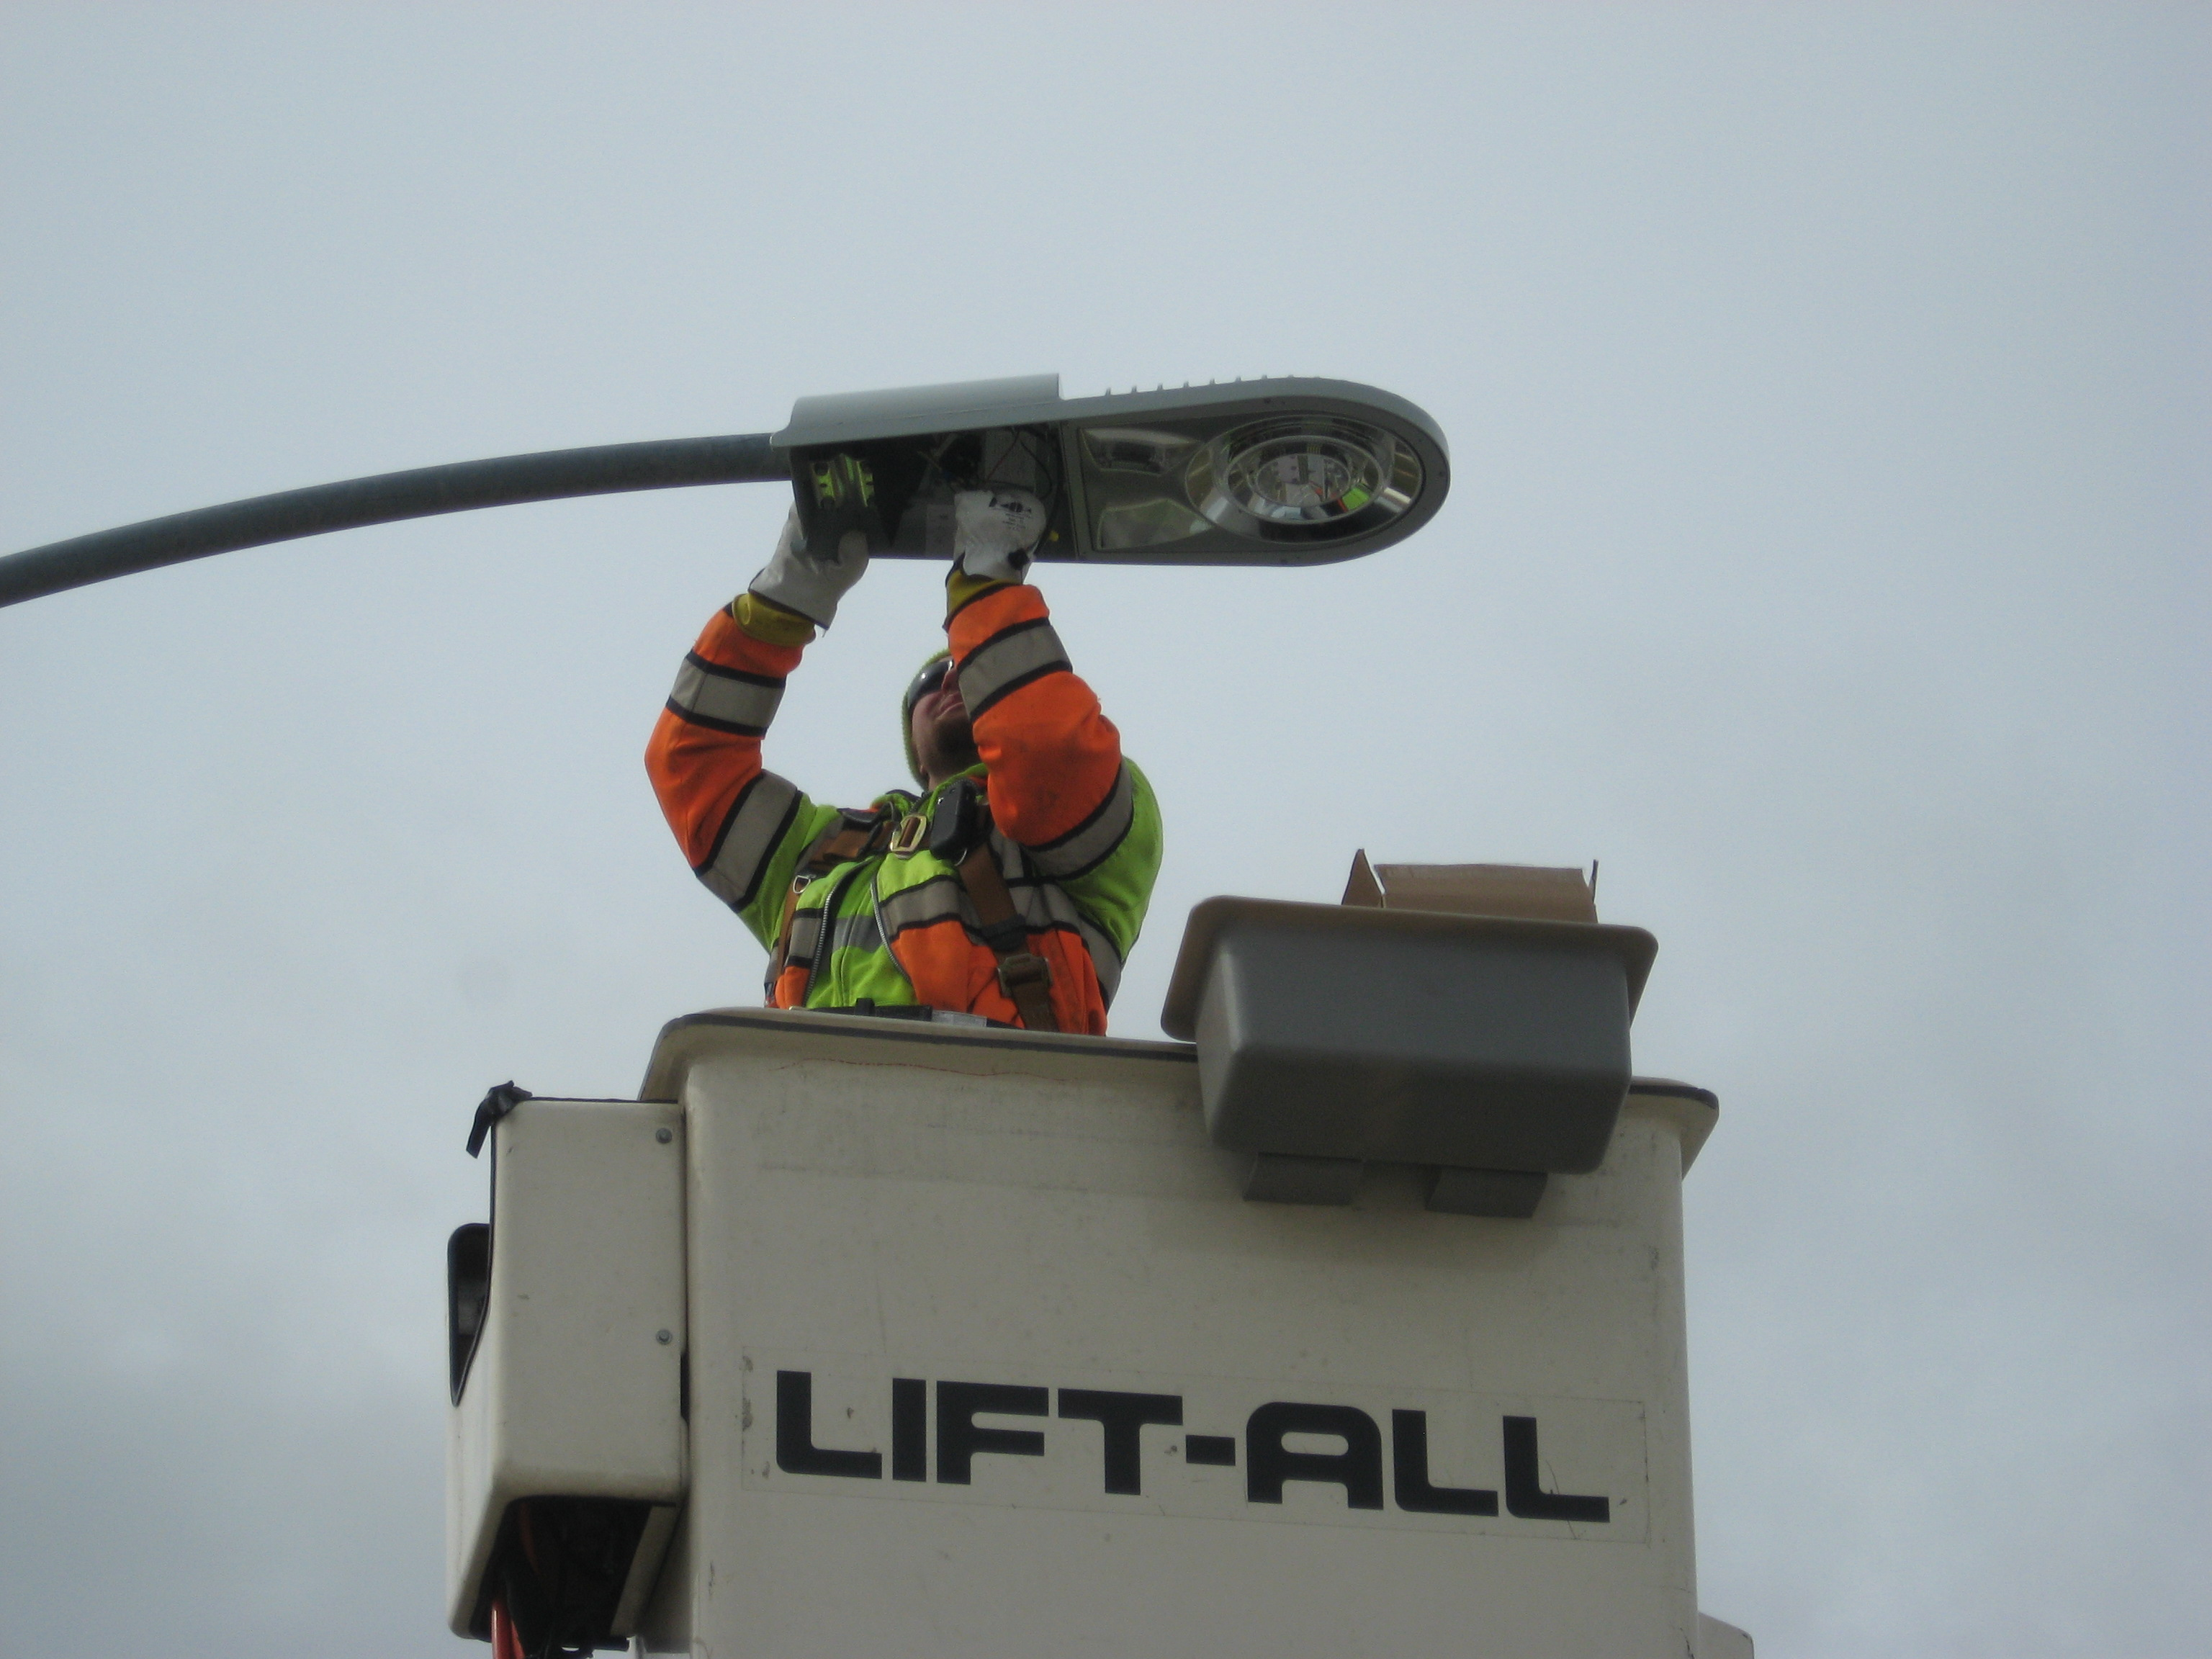 Plainfield Recognized For Participation In LED Streetlight